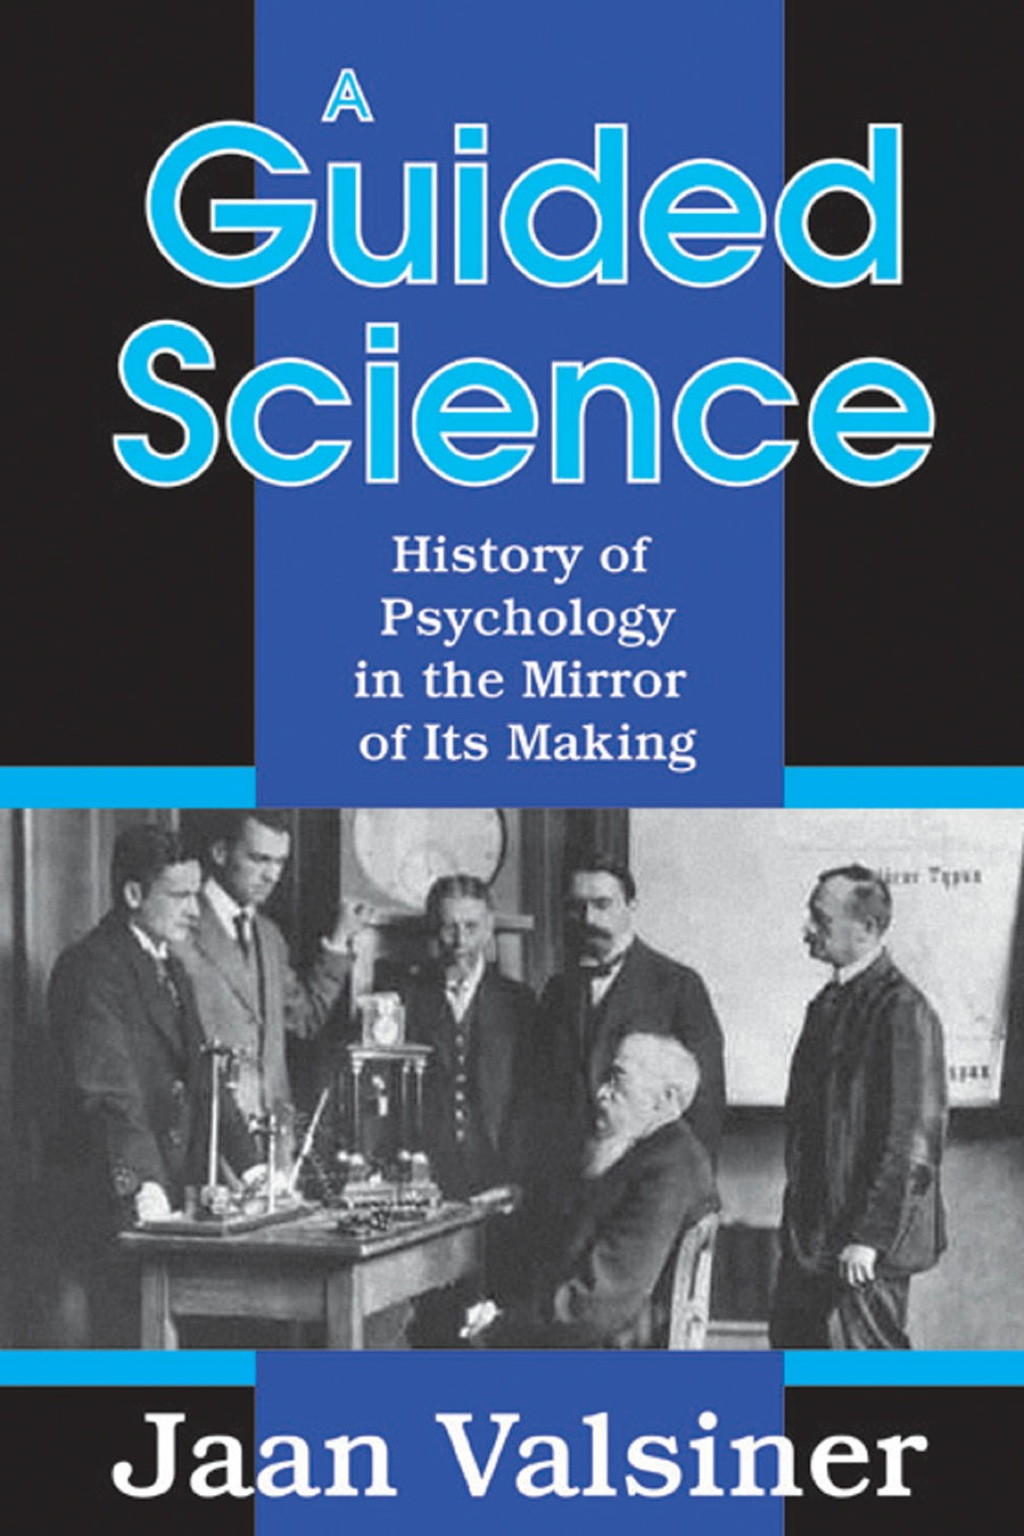 A Guided Science (eBook)